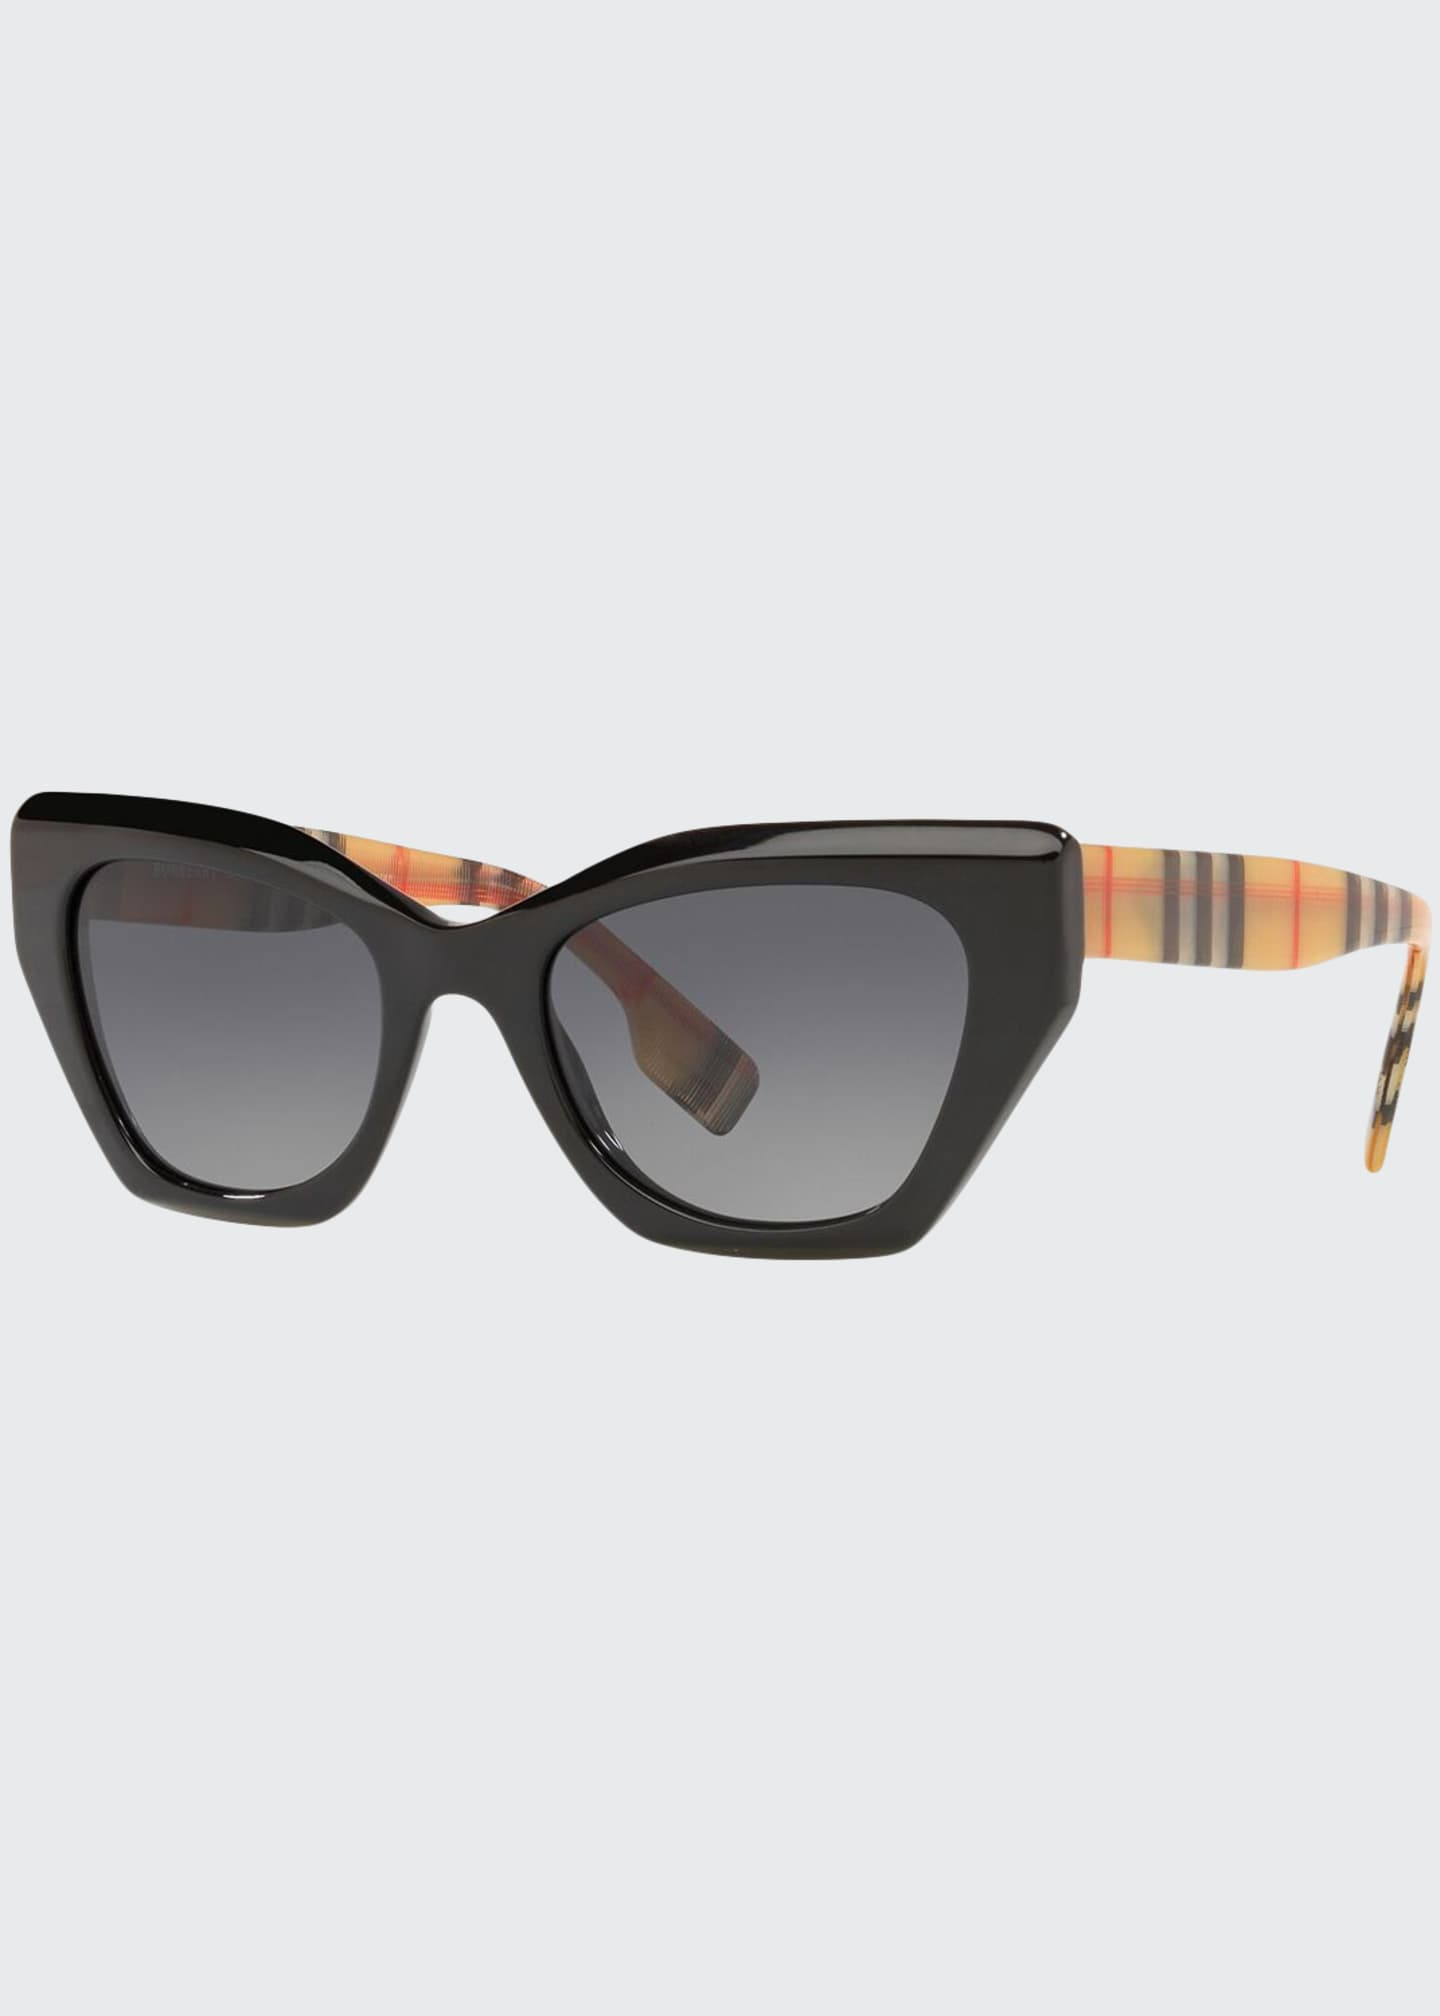 Burberry Acetate Butterfly Sunglasses